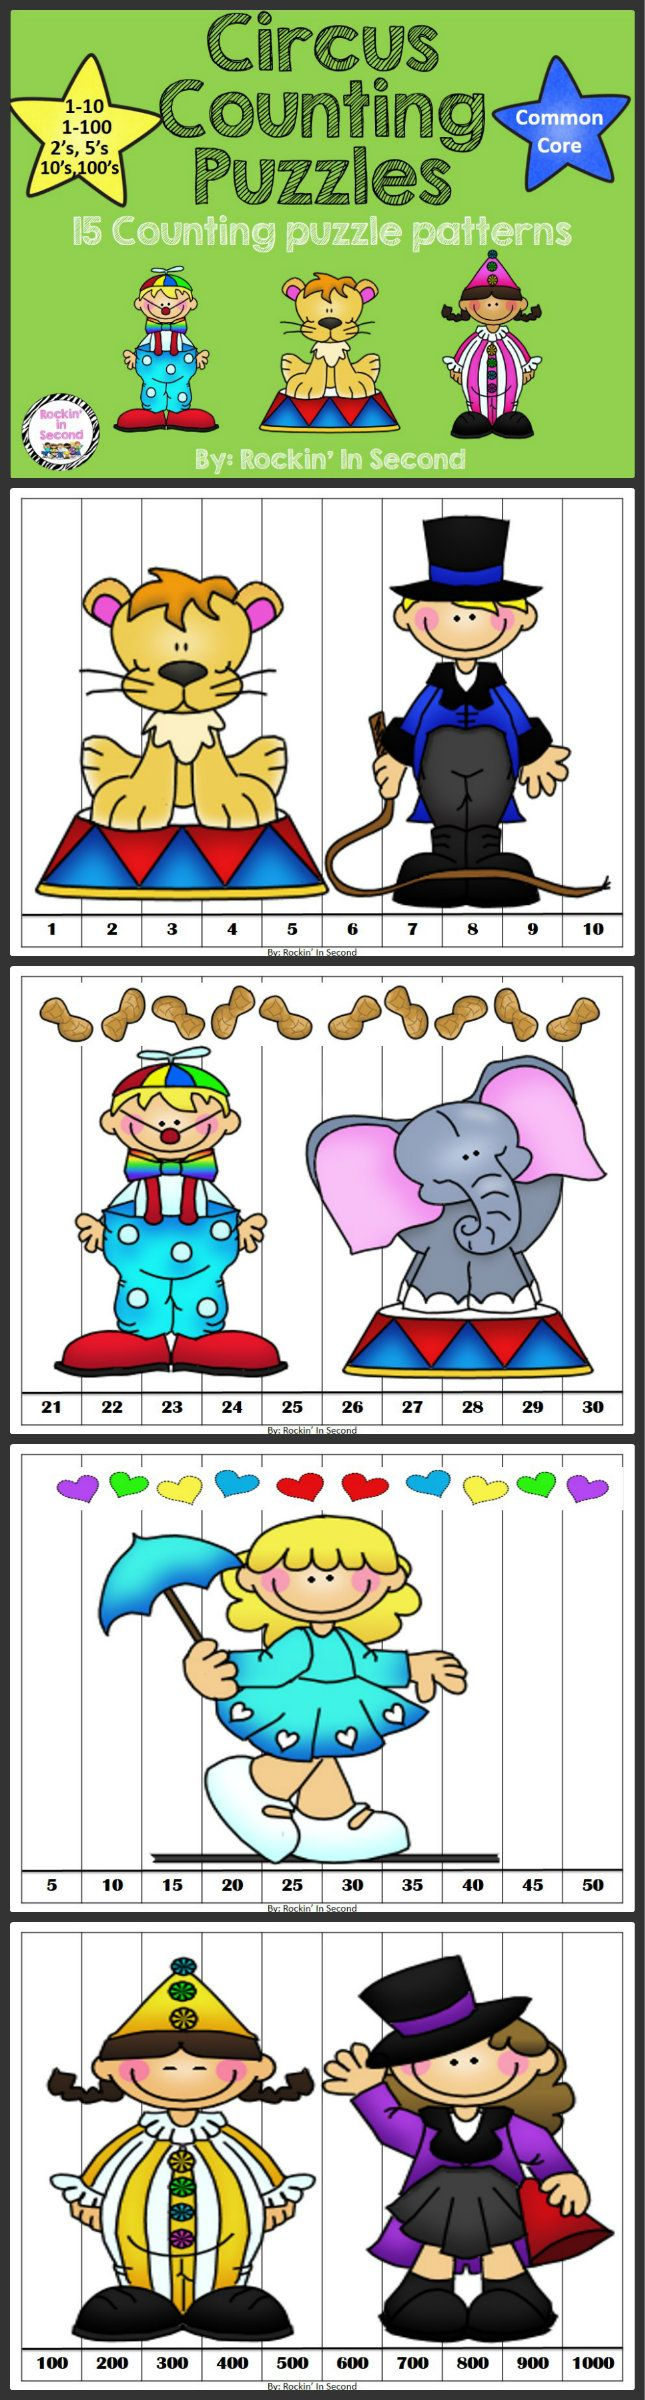 Circus Themed Counting Puzzles 15 Counting Puzzles. Common Core Aligned  Space themed puzzles counting from: 1-10 11-20 21-30 31-40 41-50 51-60 61-70 71-80 81-90 91-100  Patterns Counting by: 2's, 5's, 10's, 100's  Print, Laminate, and Cut. Instant hands-on puzzles.  Follow me on TPT for new and exciting activities and freebies! Feel free to pin on Pinterest too.